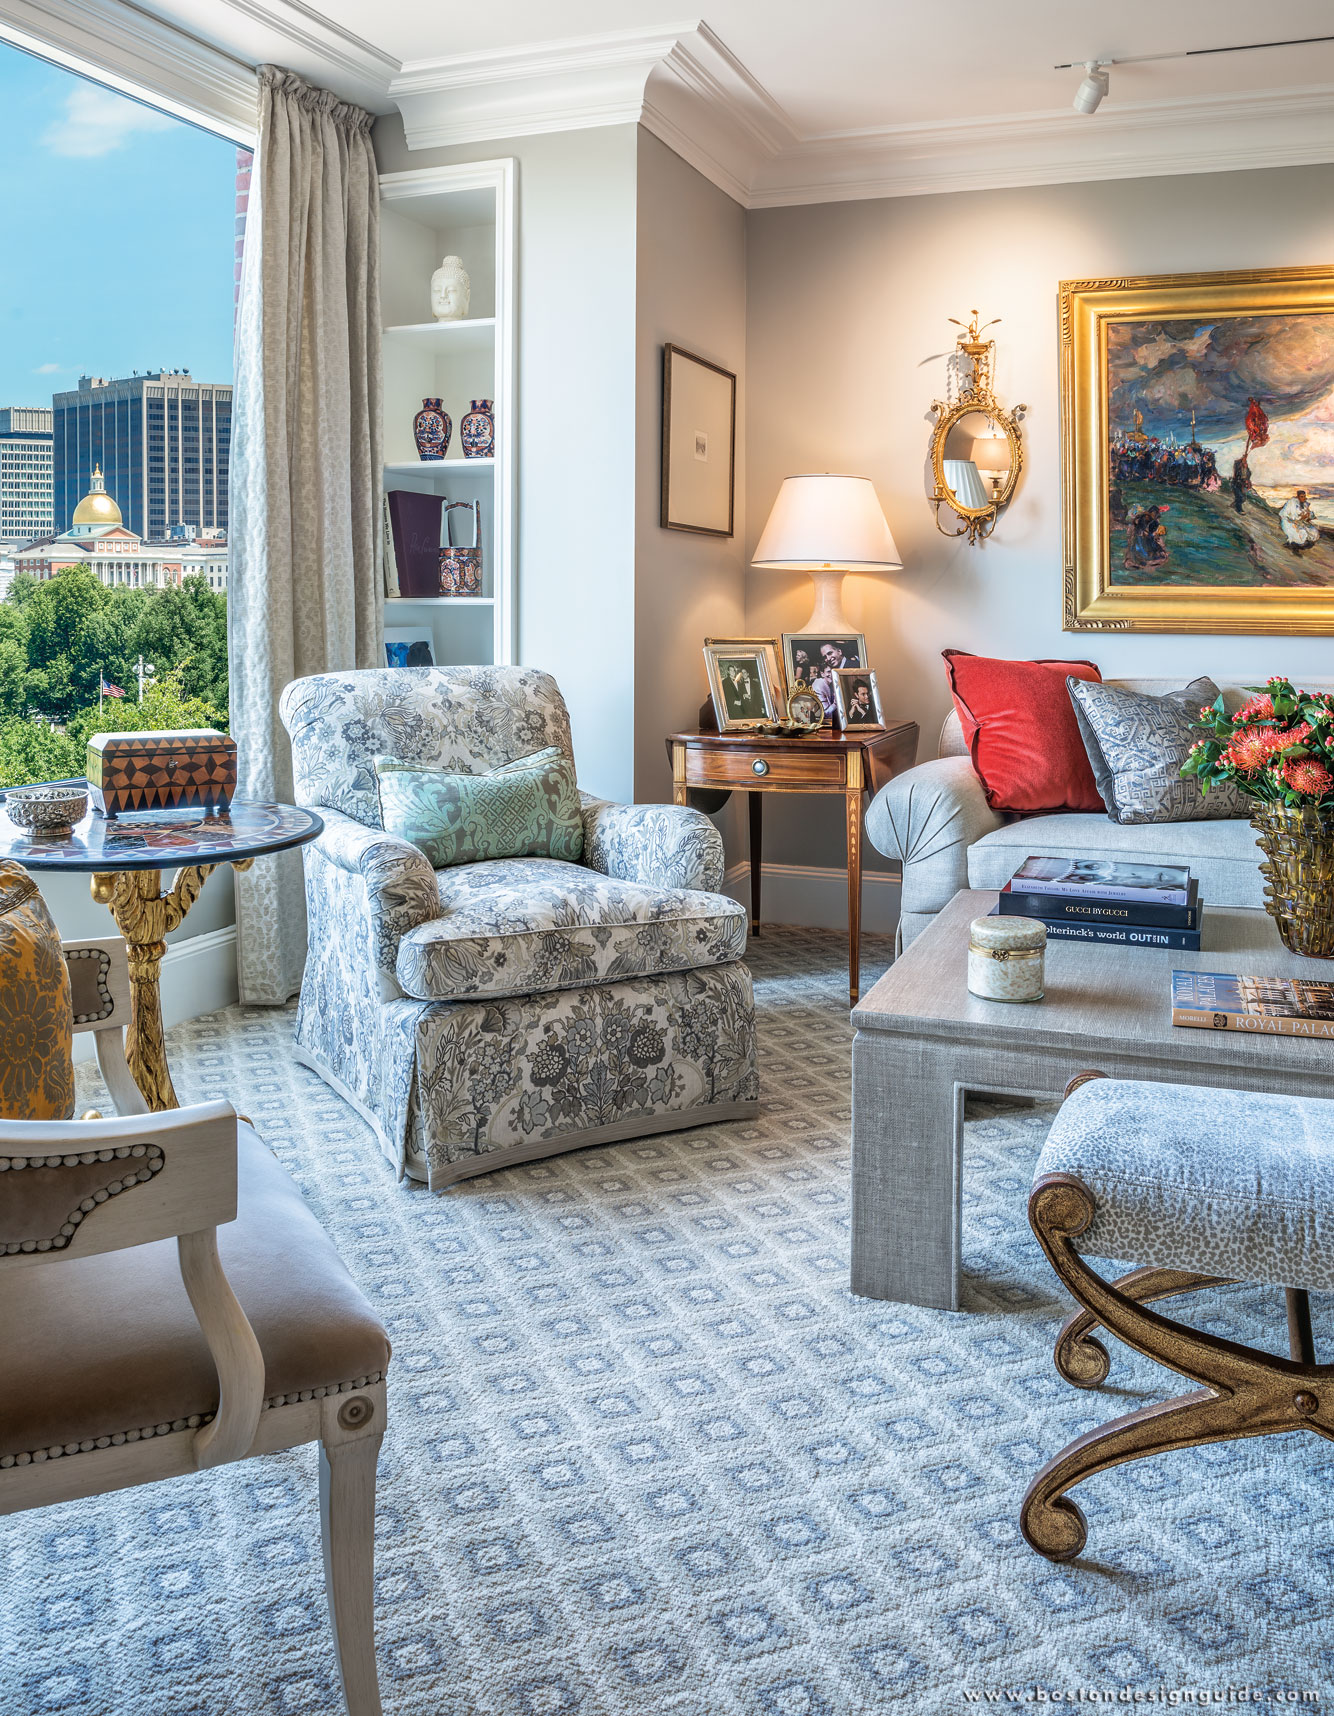 Anthony Catalfano Interiors; Photography by Warren Patterson